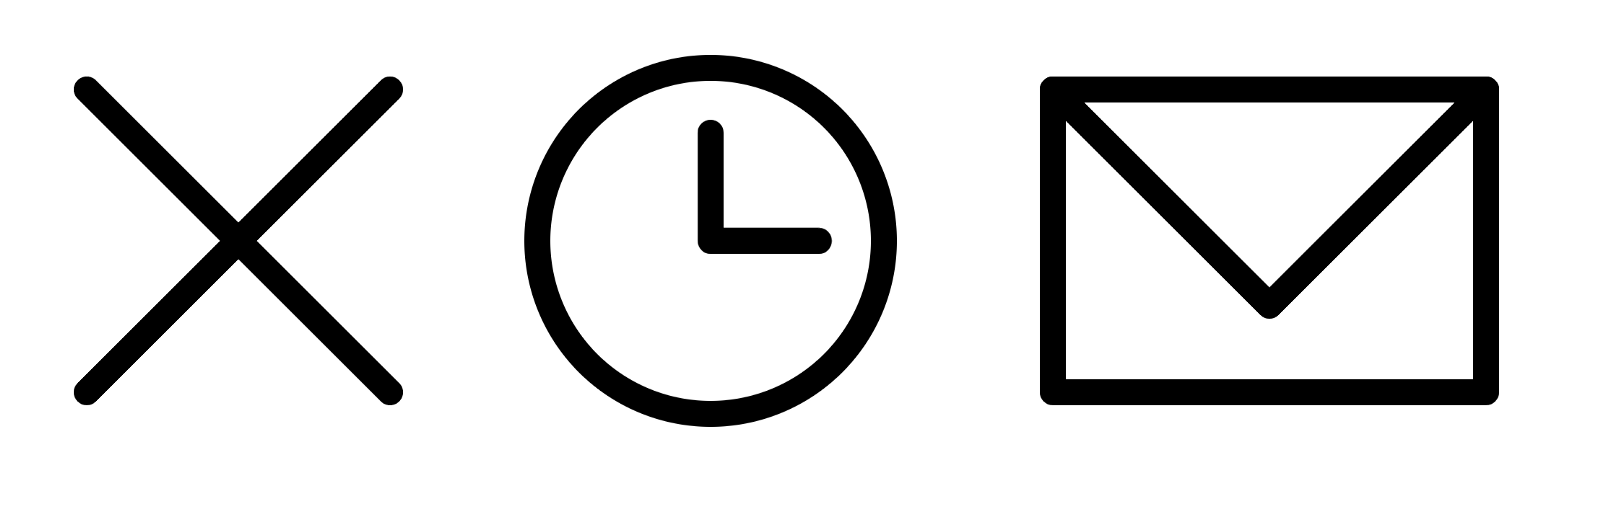 Showing an close icon in the shape of an x, a clock with the hands pointing at 3 o-clock, and a closed envelope.